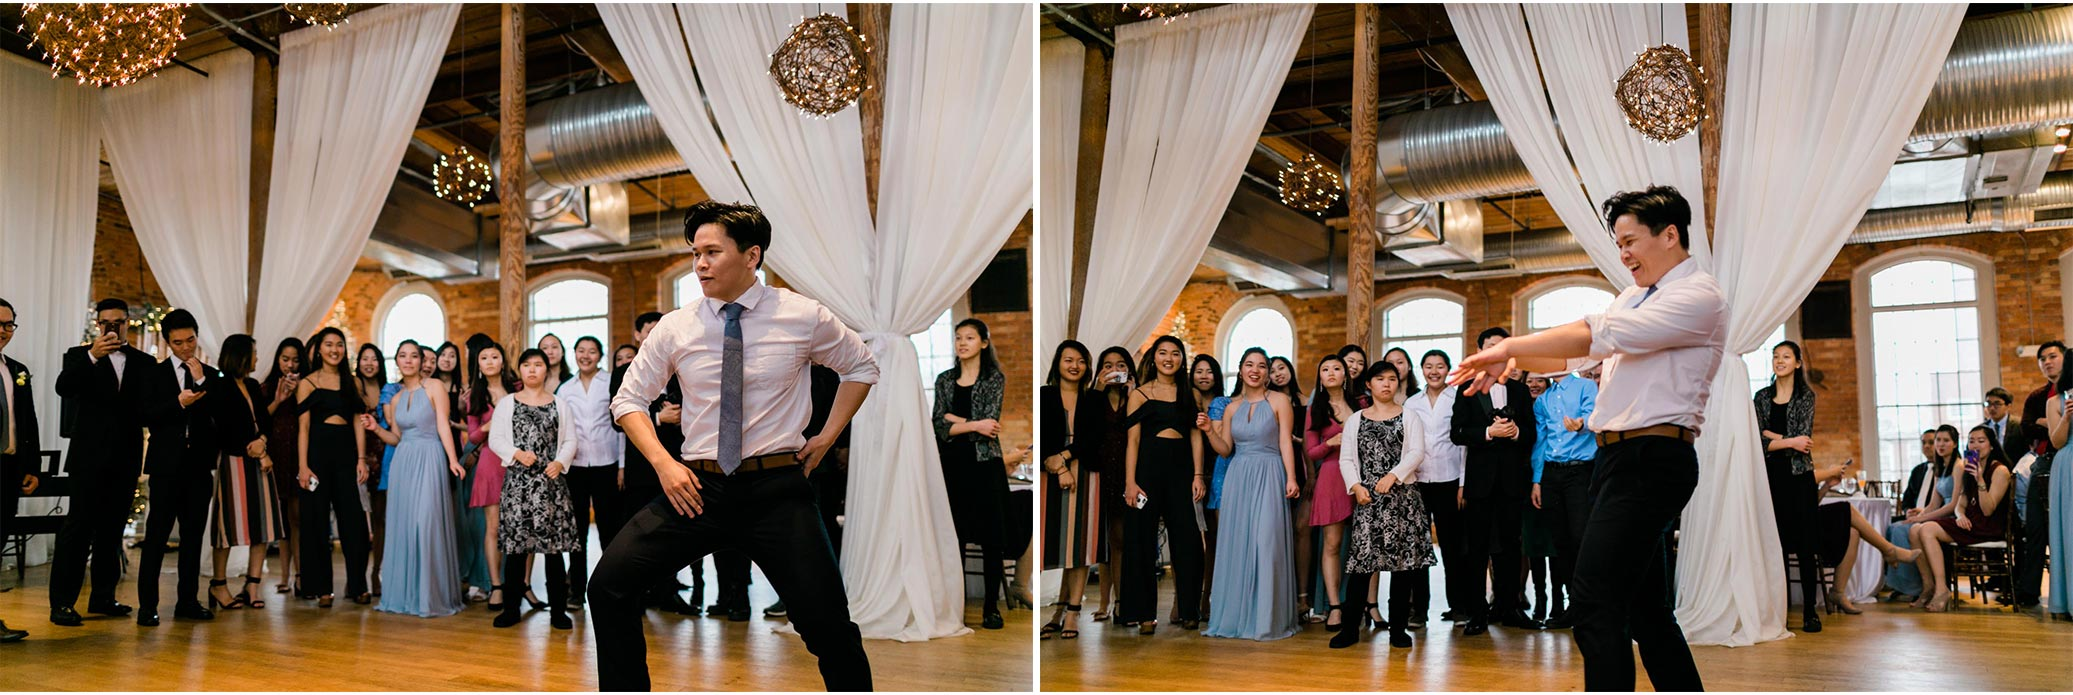 Man dancing during wedding reception | Durham Wedding Photographer | The Cotton Room | By G. Lin Photography